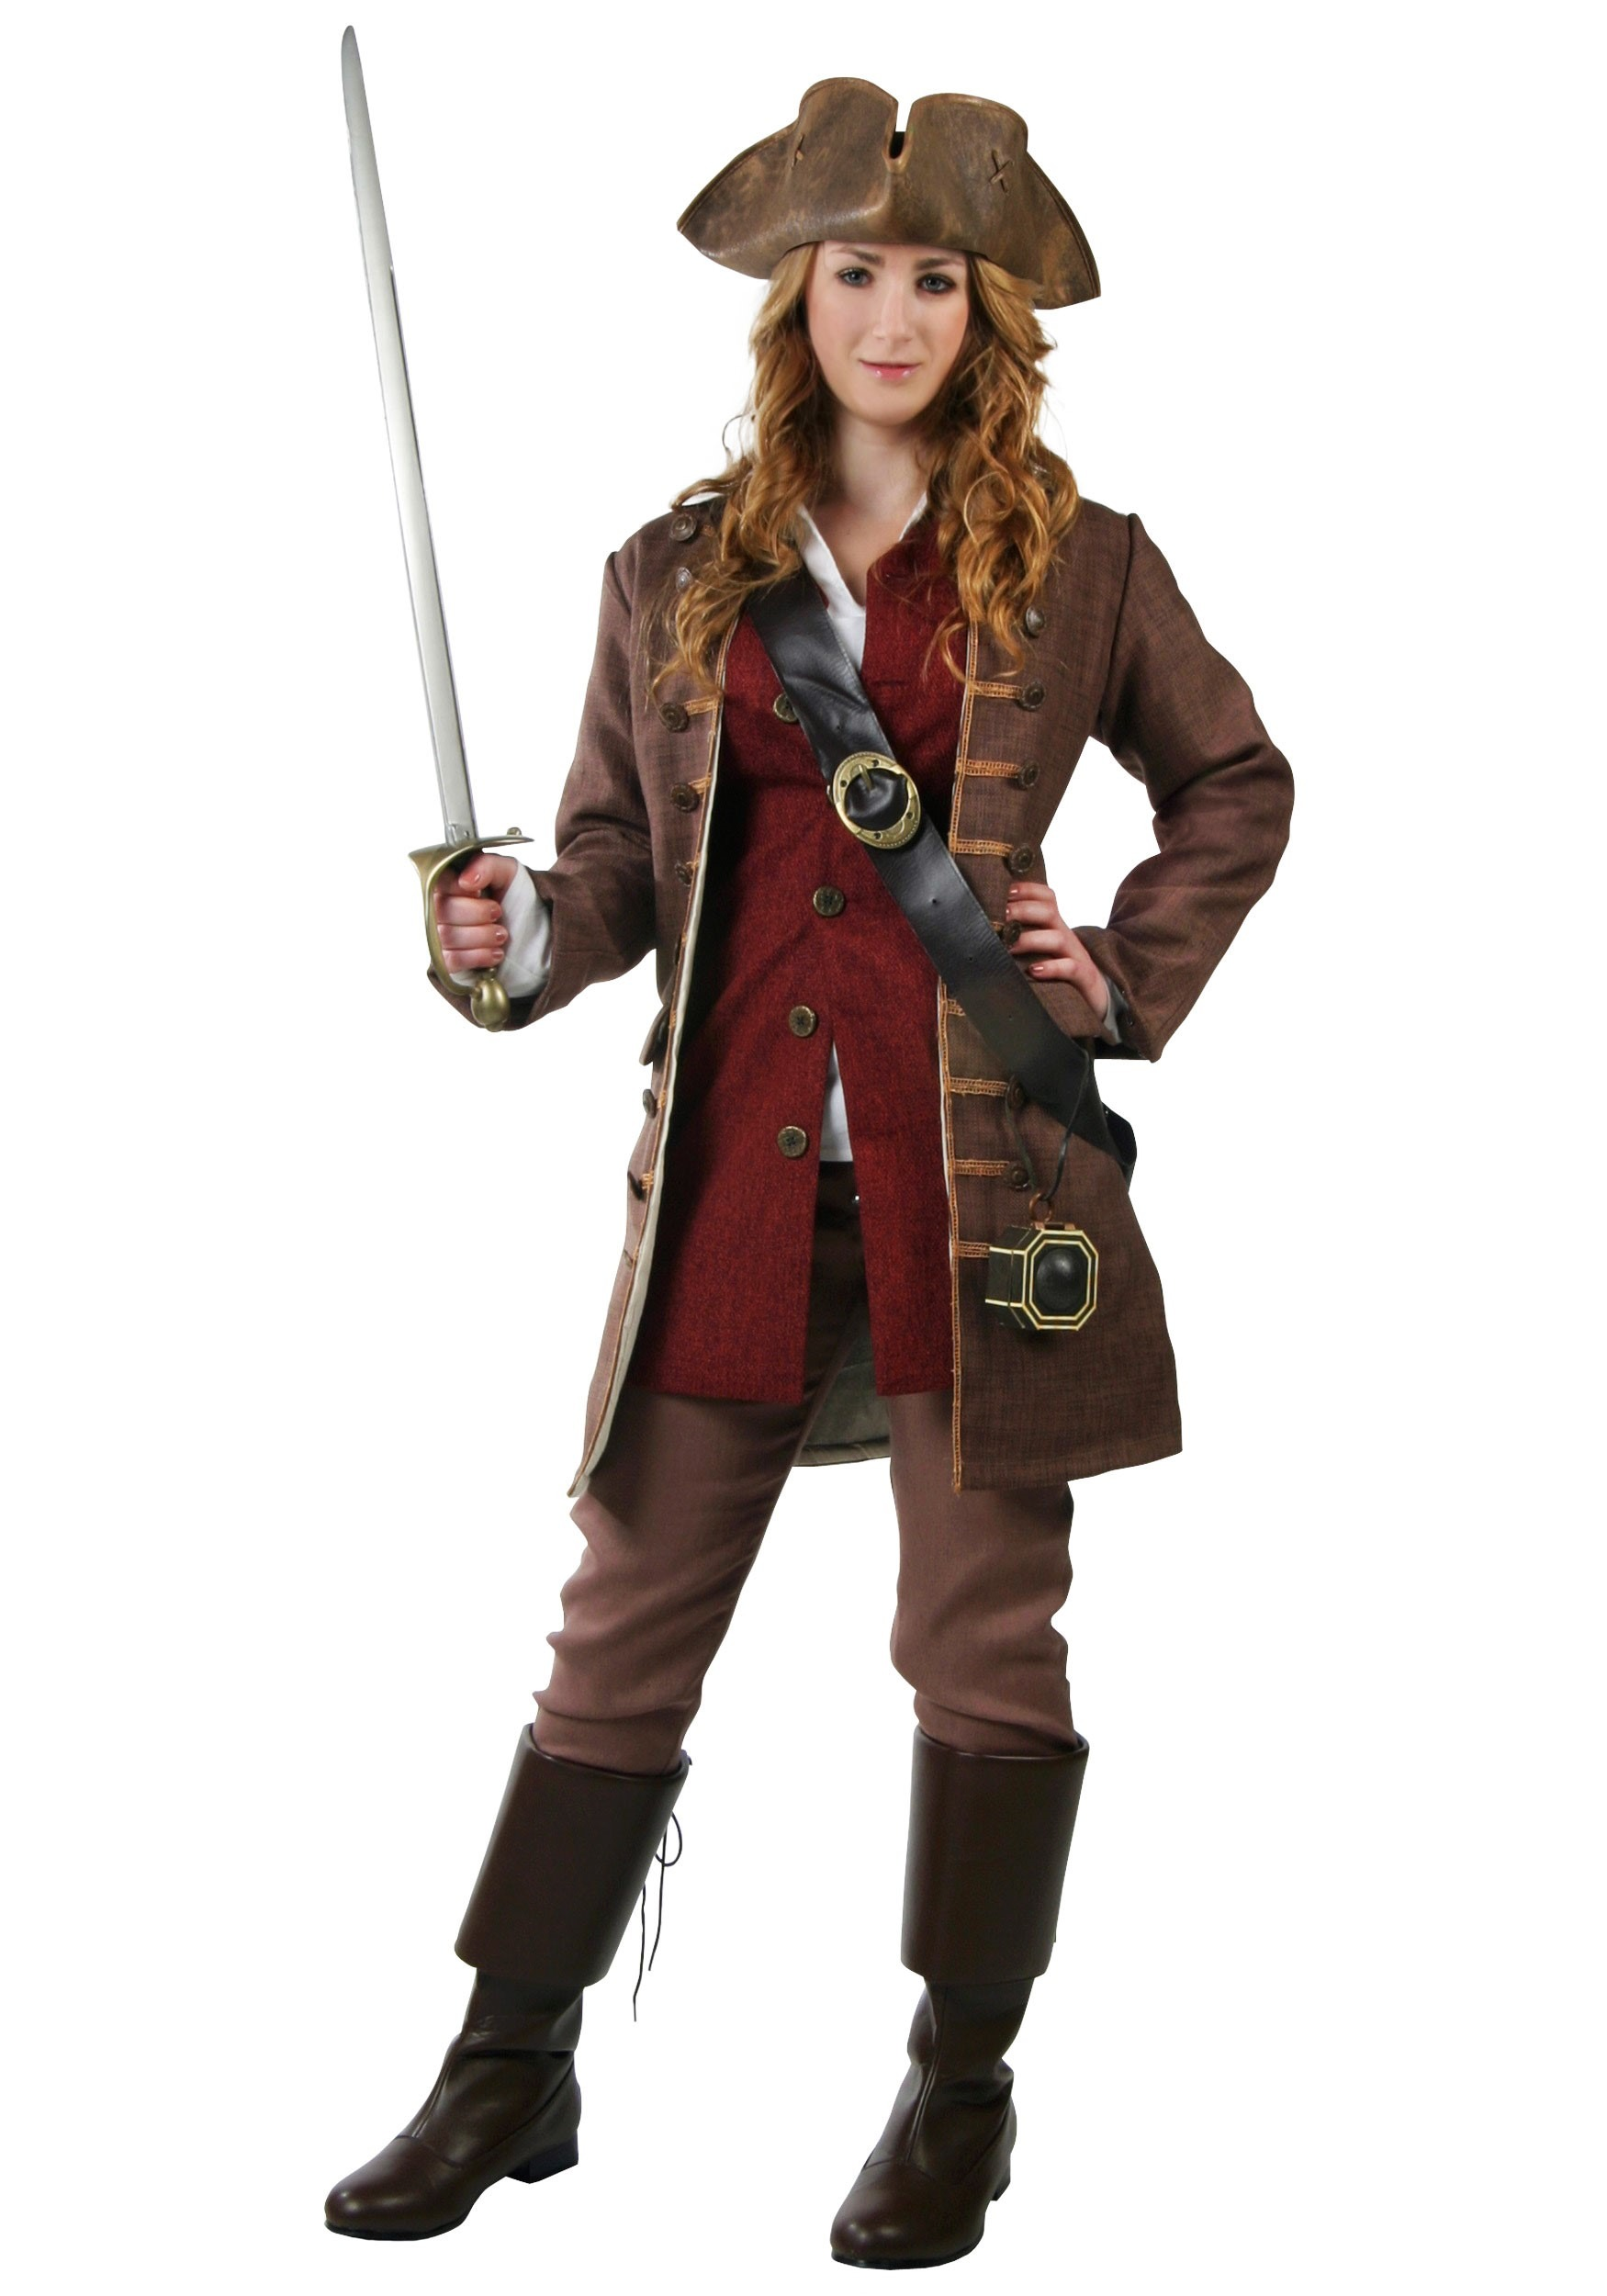 Unique This Womens Deckhand Darlin Pirate Costume Is An Authentic Womens Pirate Wench Costume Get This Deluxe Pirate Costume For Halloween Or Theater Production Sail The High Seas In Style In This Deckhand Darlin Pirate Costume This